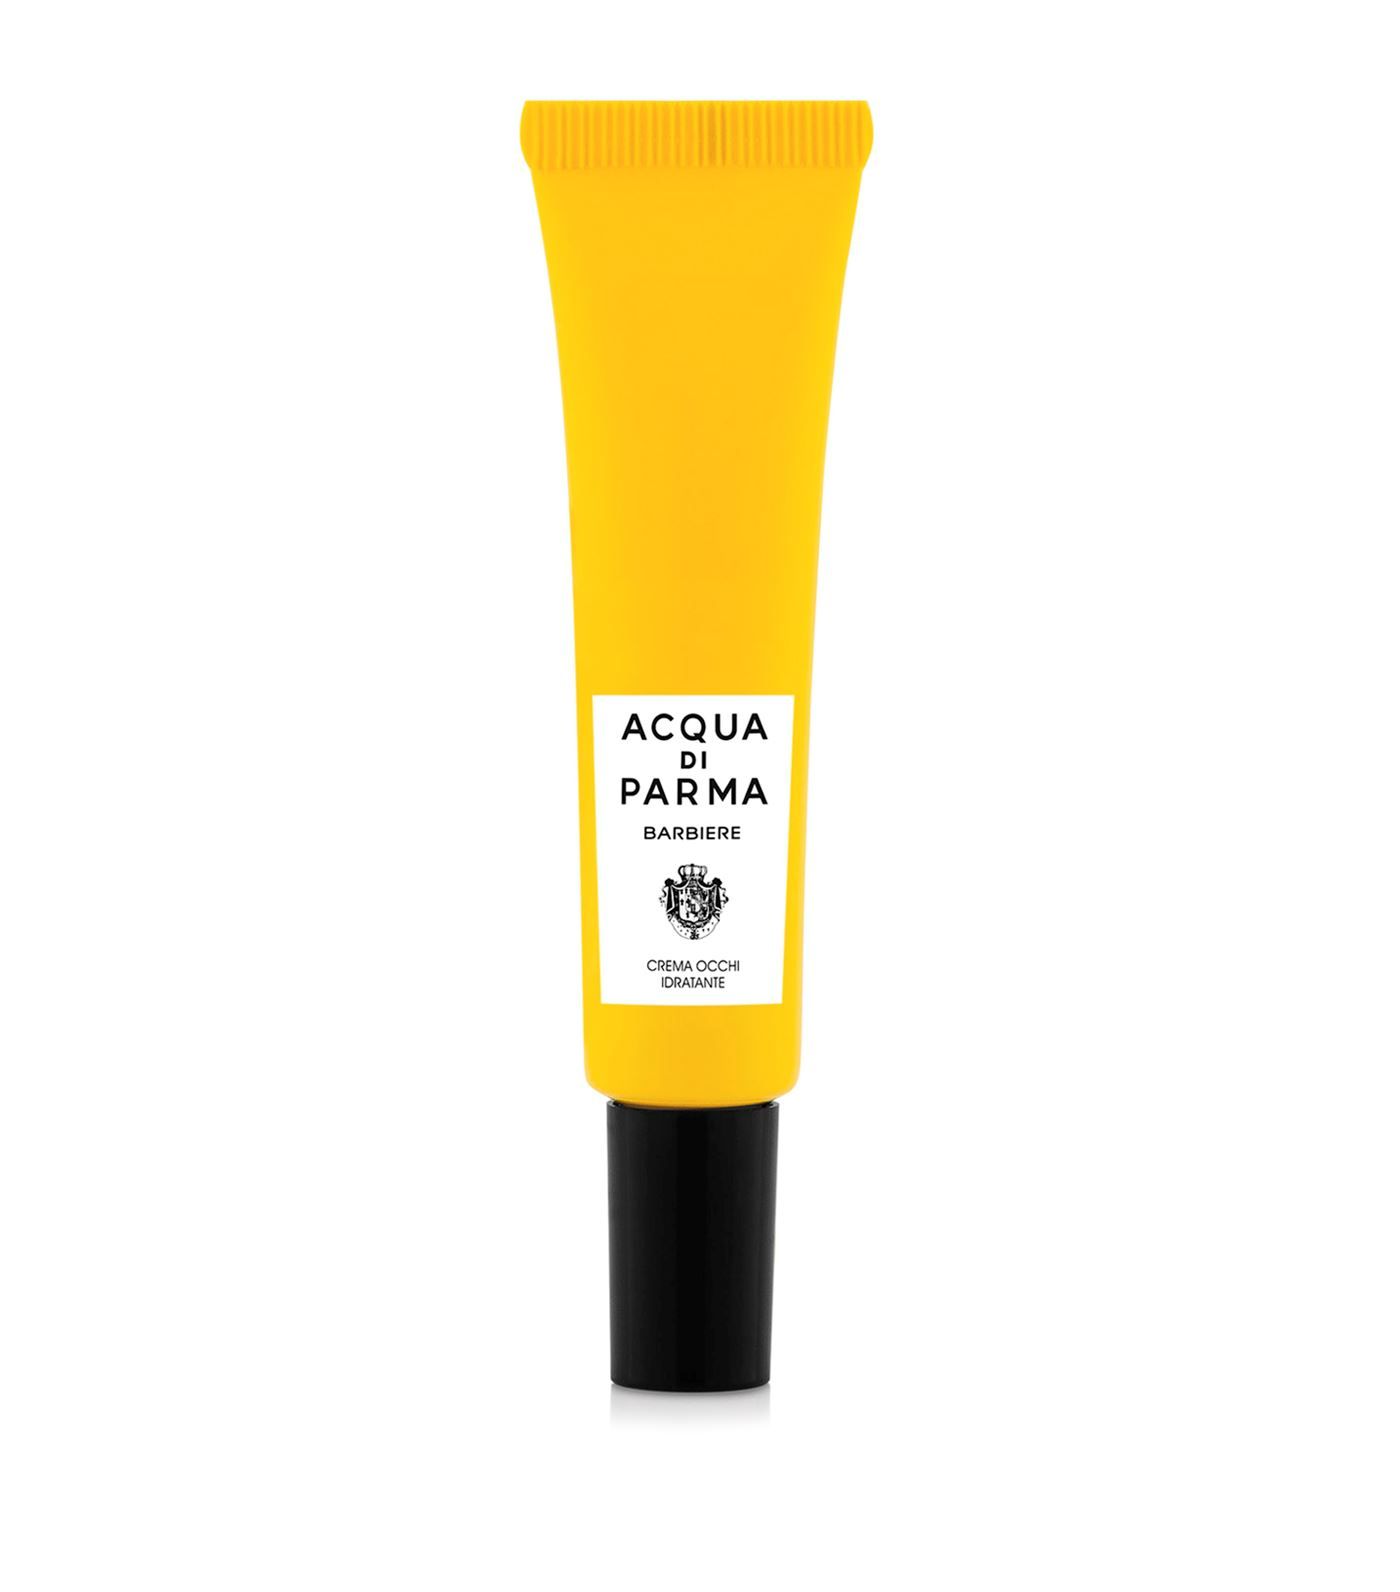 Acqua di Parma - Continuing to craft luxury grooming products and fragrances at its expert atelier i